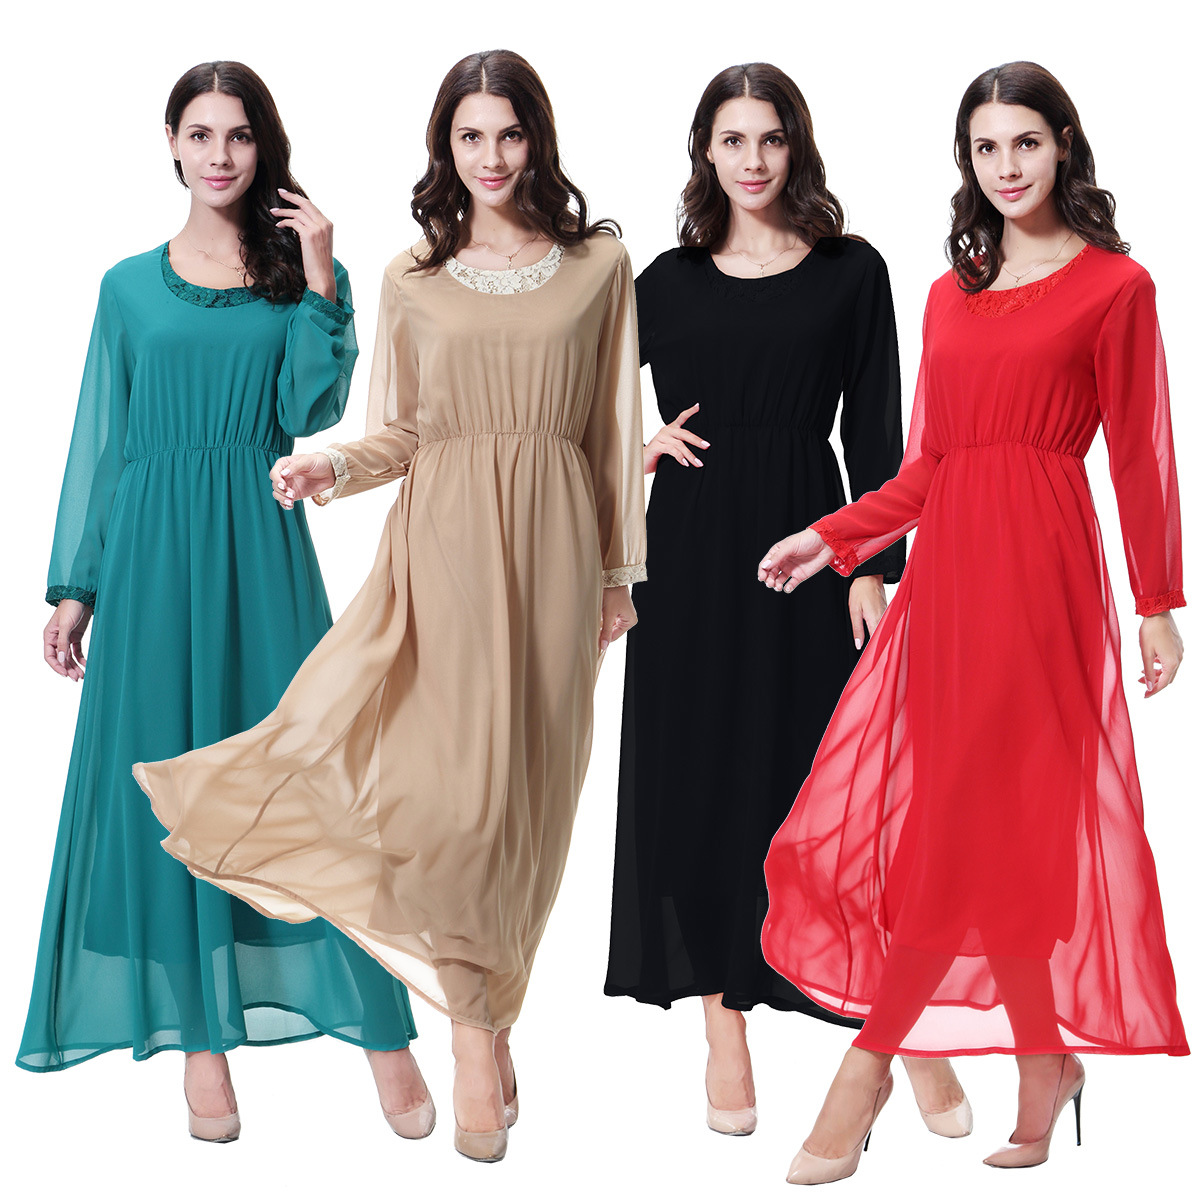 Chiffon Lace Dress Abaya Muslim Women Evening Dress Islamic Abaya Women Dress  Dubai Abaya Women